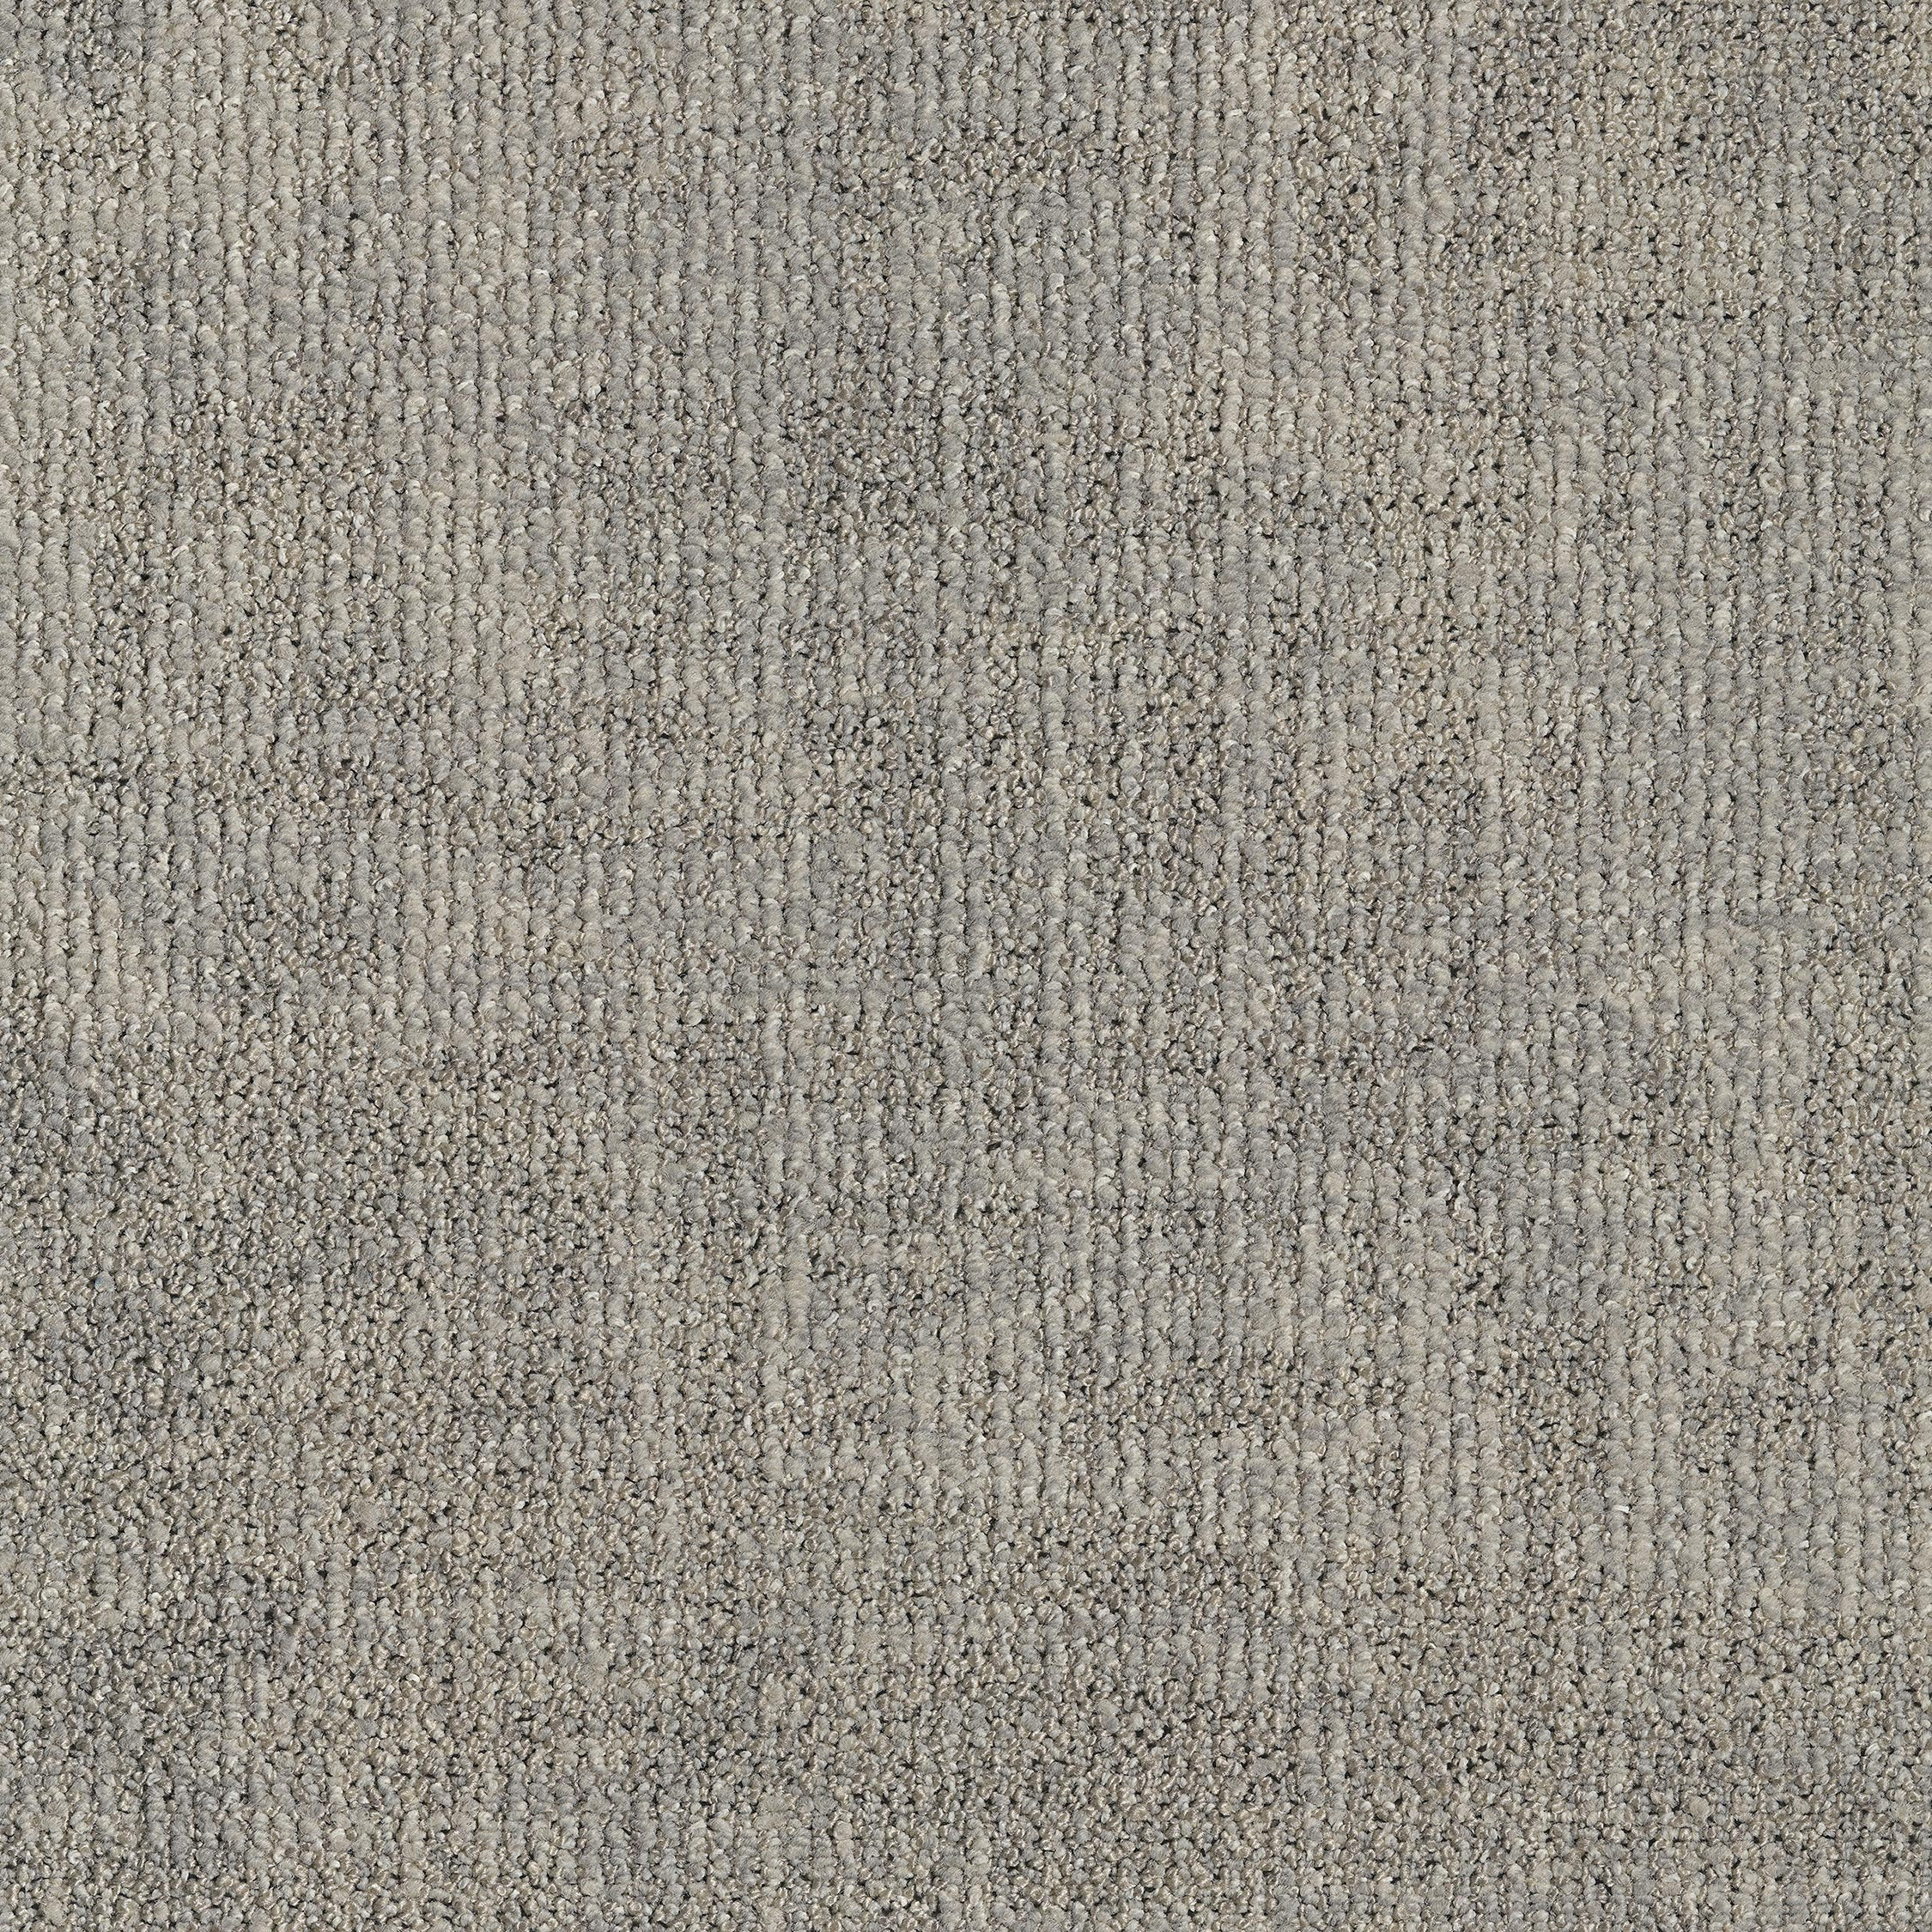 ReForm Transition Leaf warm grey 5595